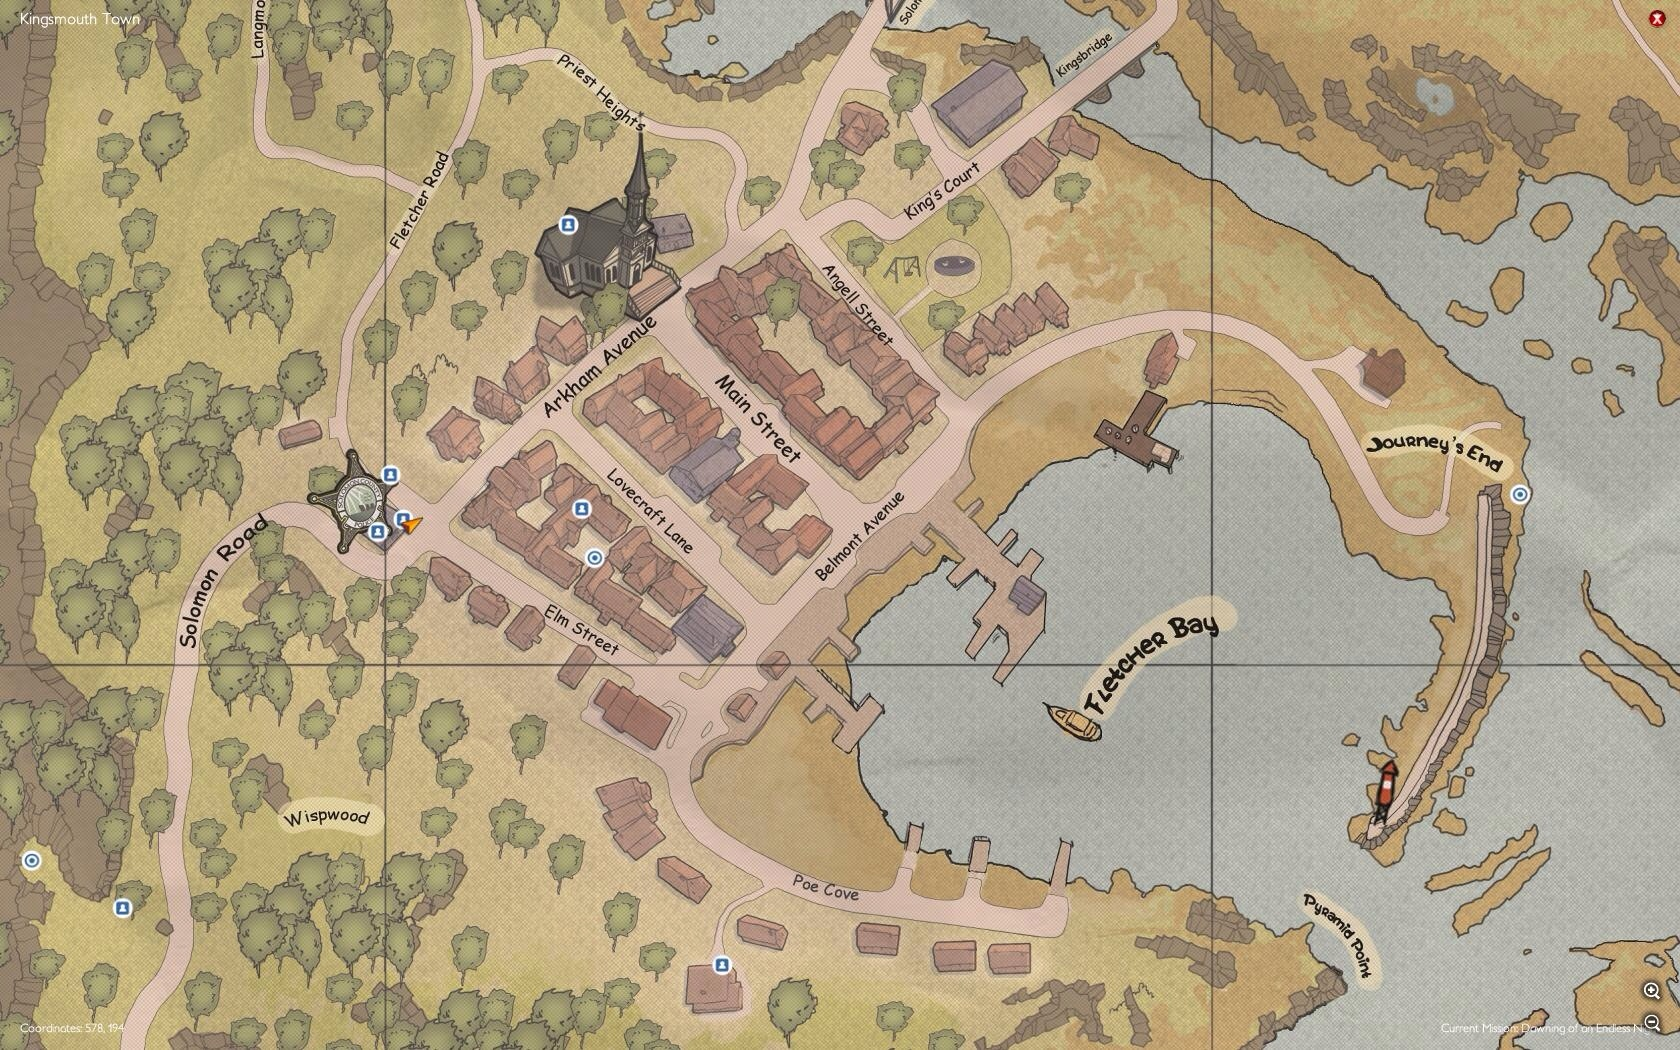 Main map of Kingsmouth